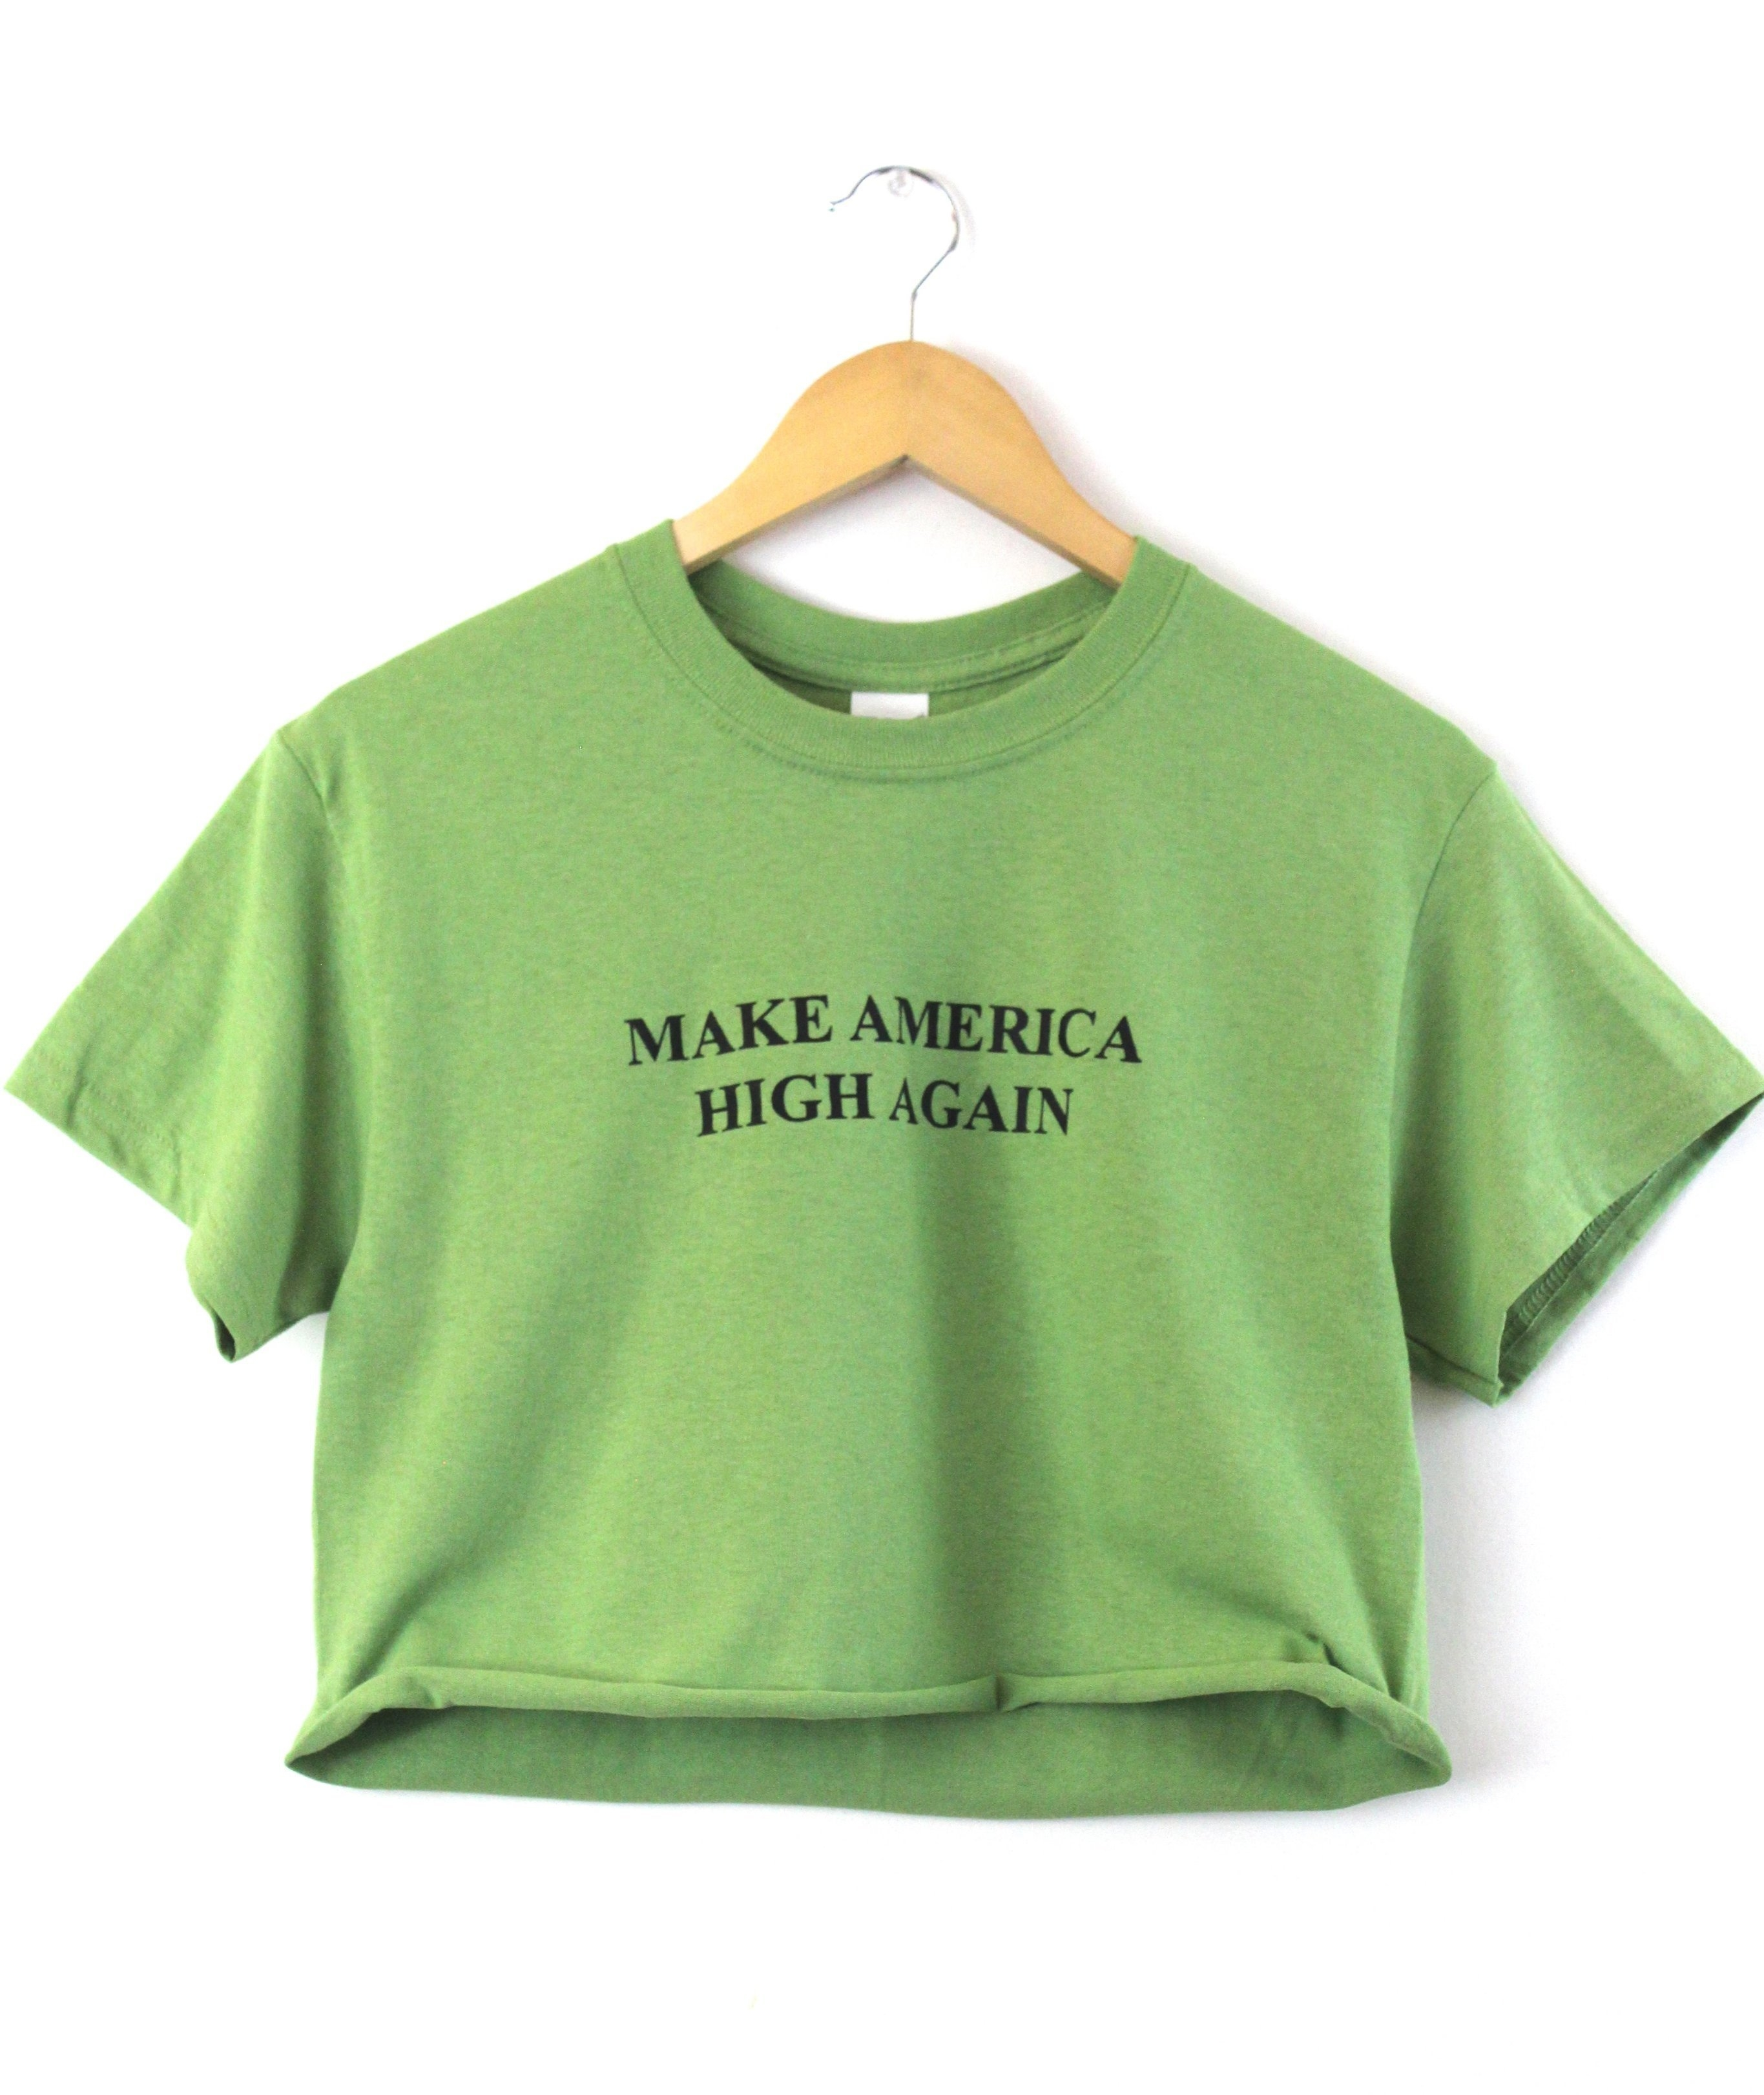 Image of Make America High Again Graphic Unisex Cropped Tee